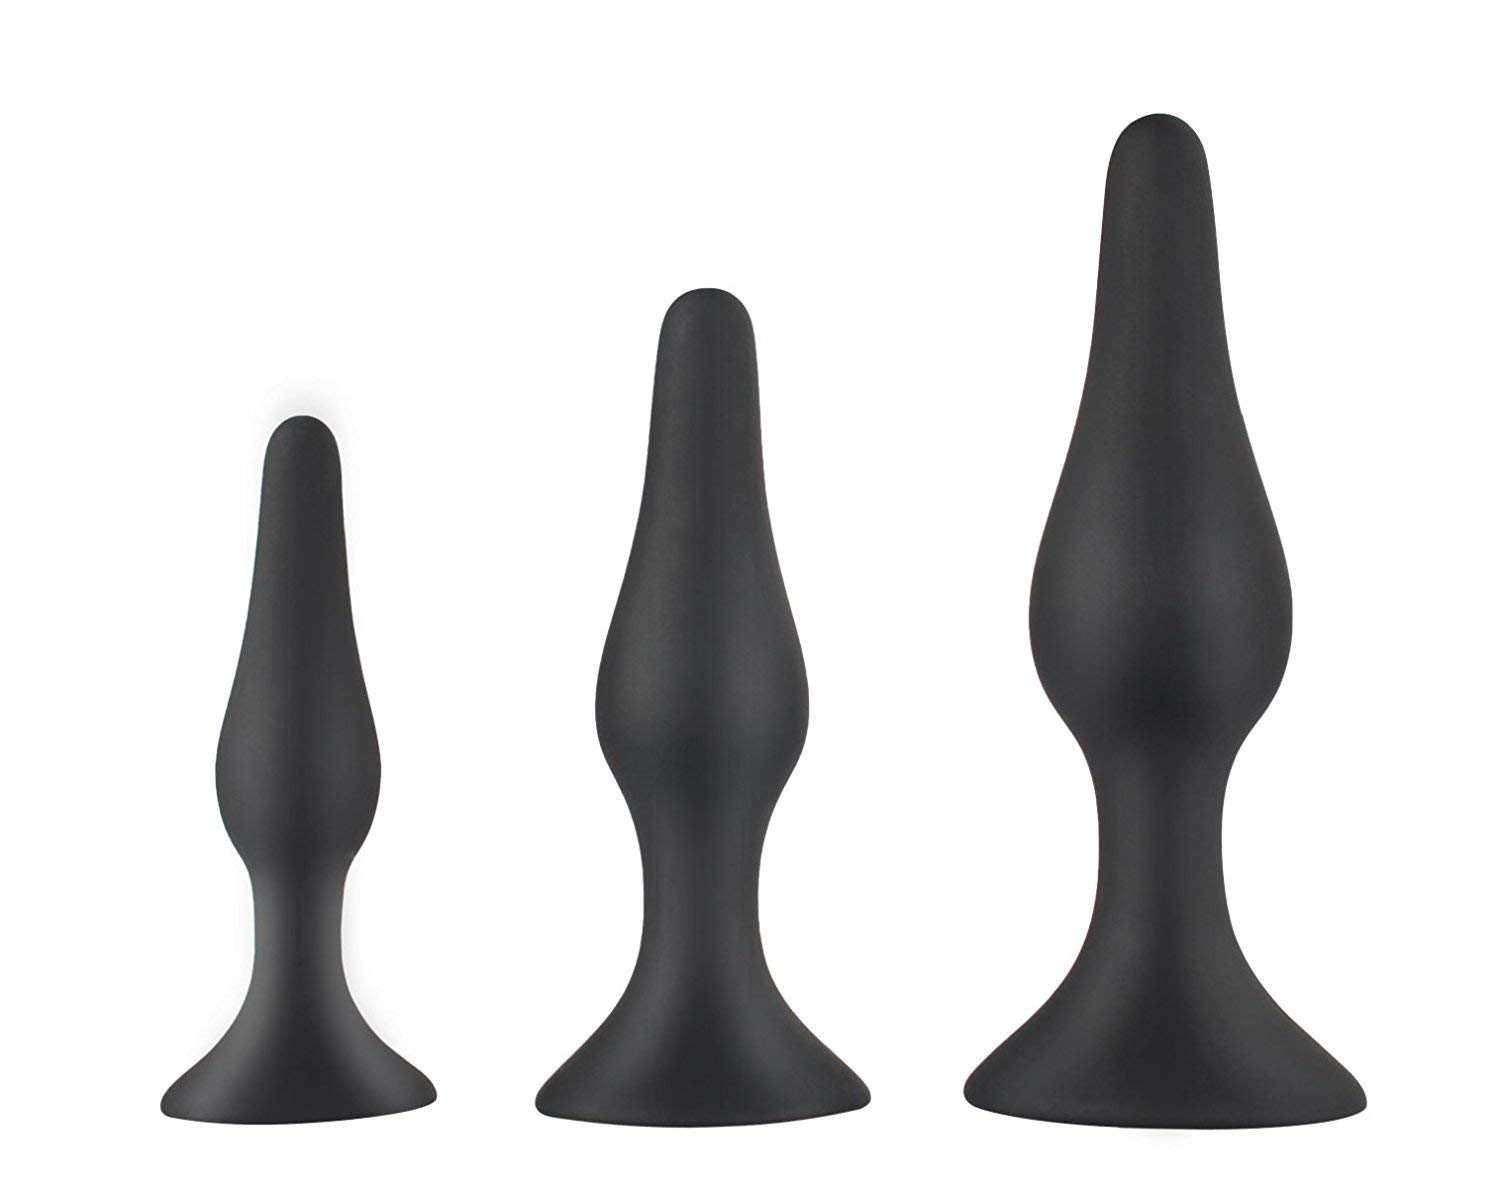 TruBliss Eros, Premium Silicone Butt Plug and Anal Starter Kit, Excellent Sex Toy for Experienced Users and Beginners, 100% Medical Grade Silicone